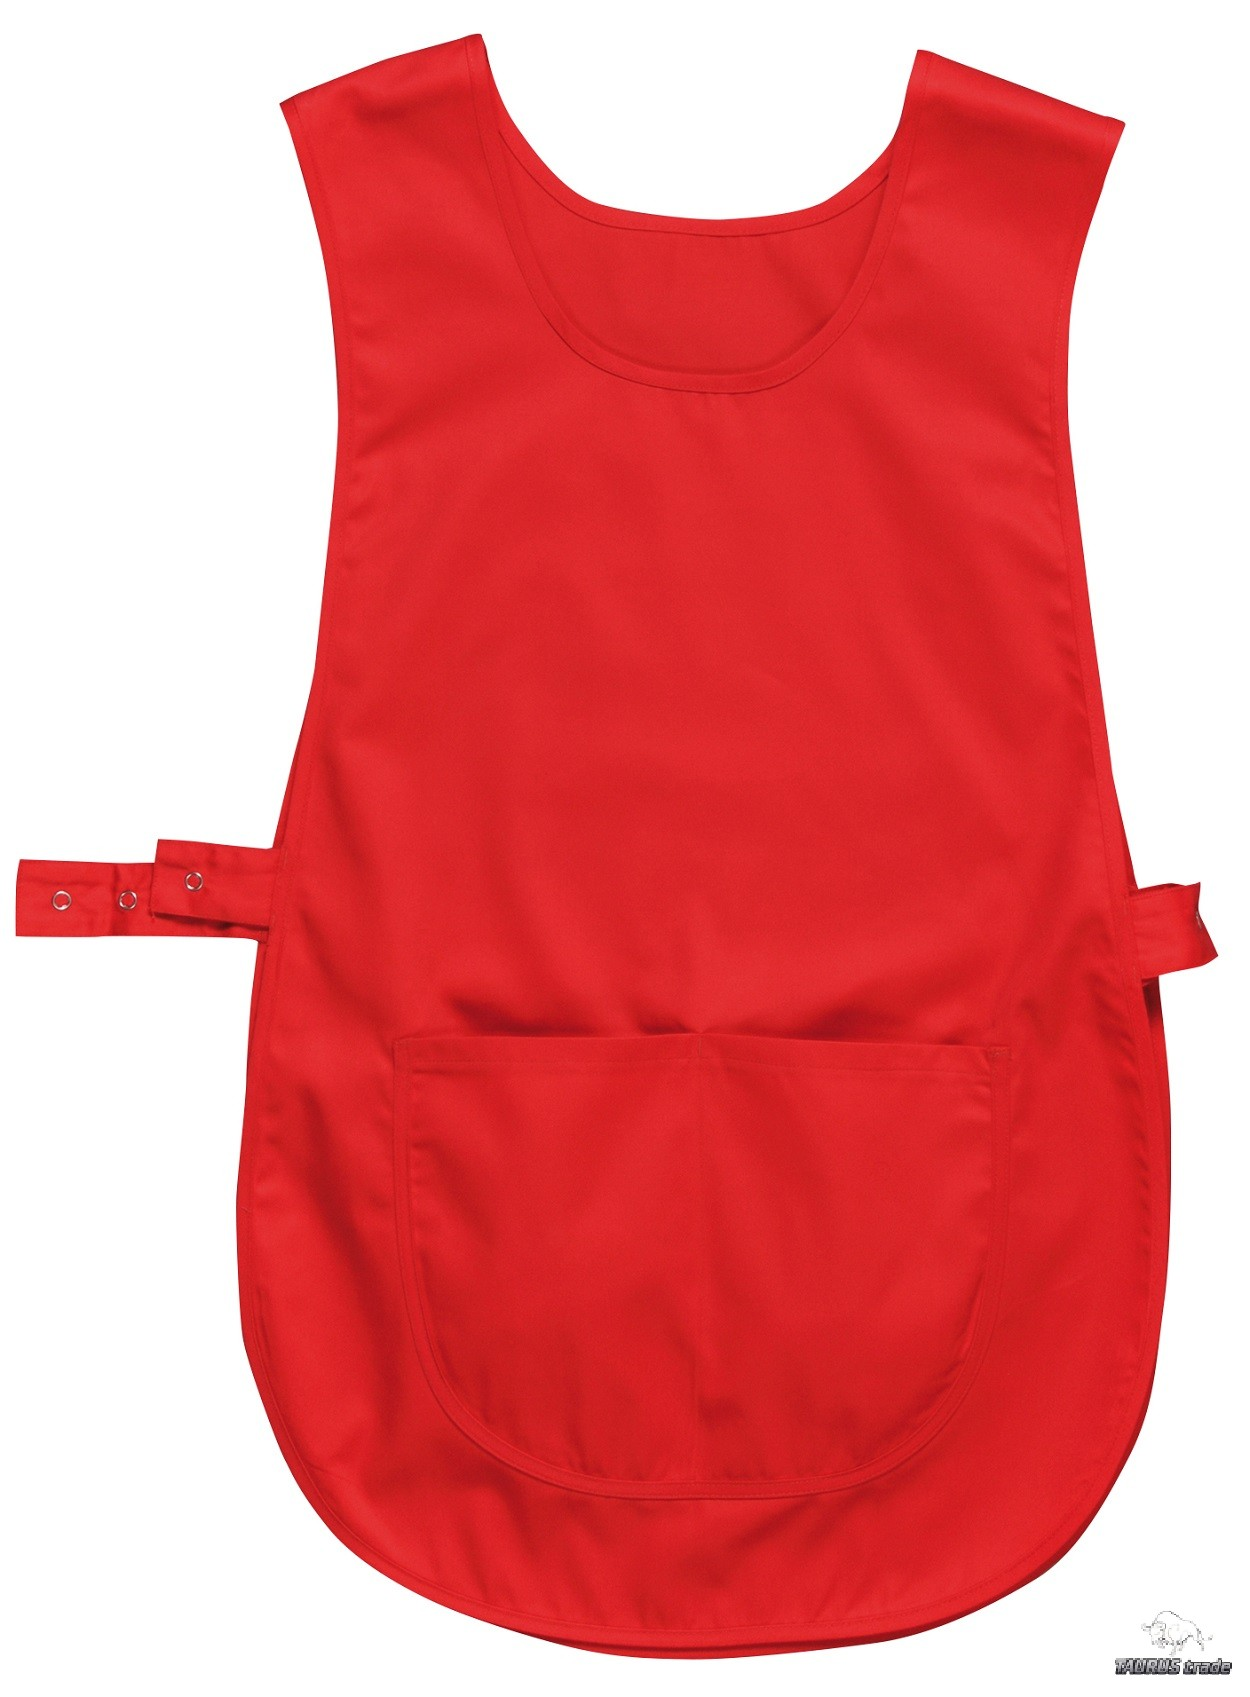 S843-red